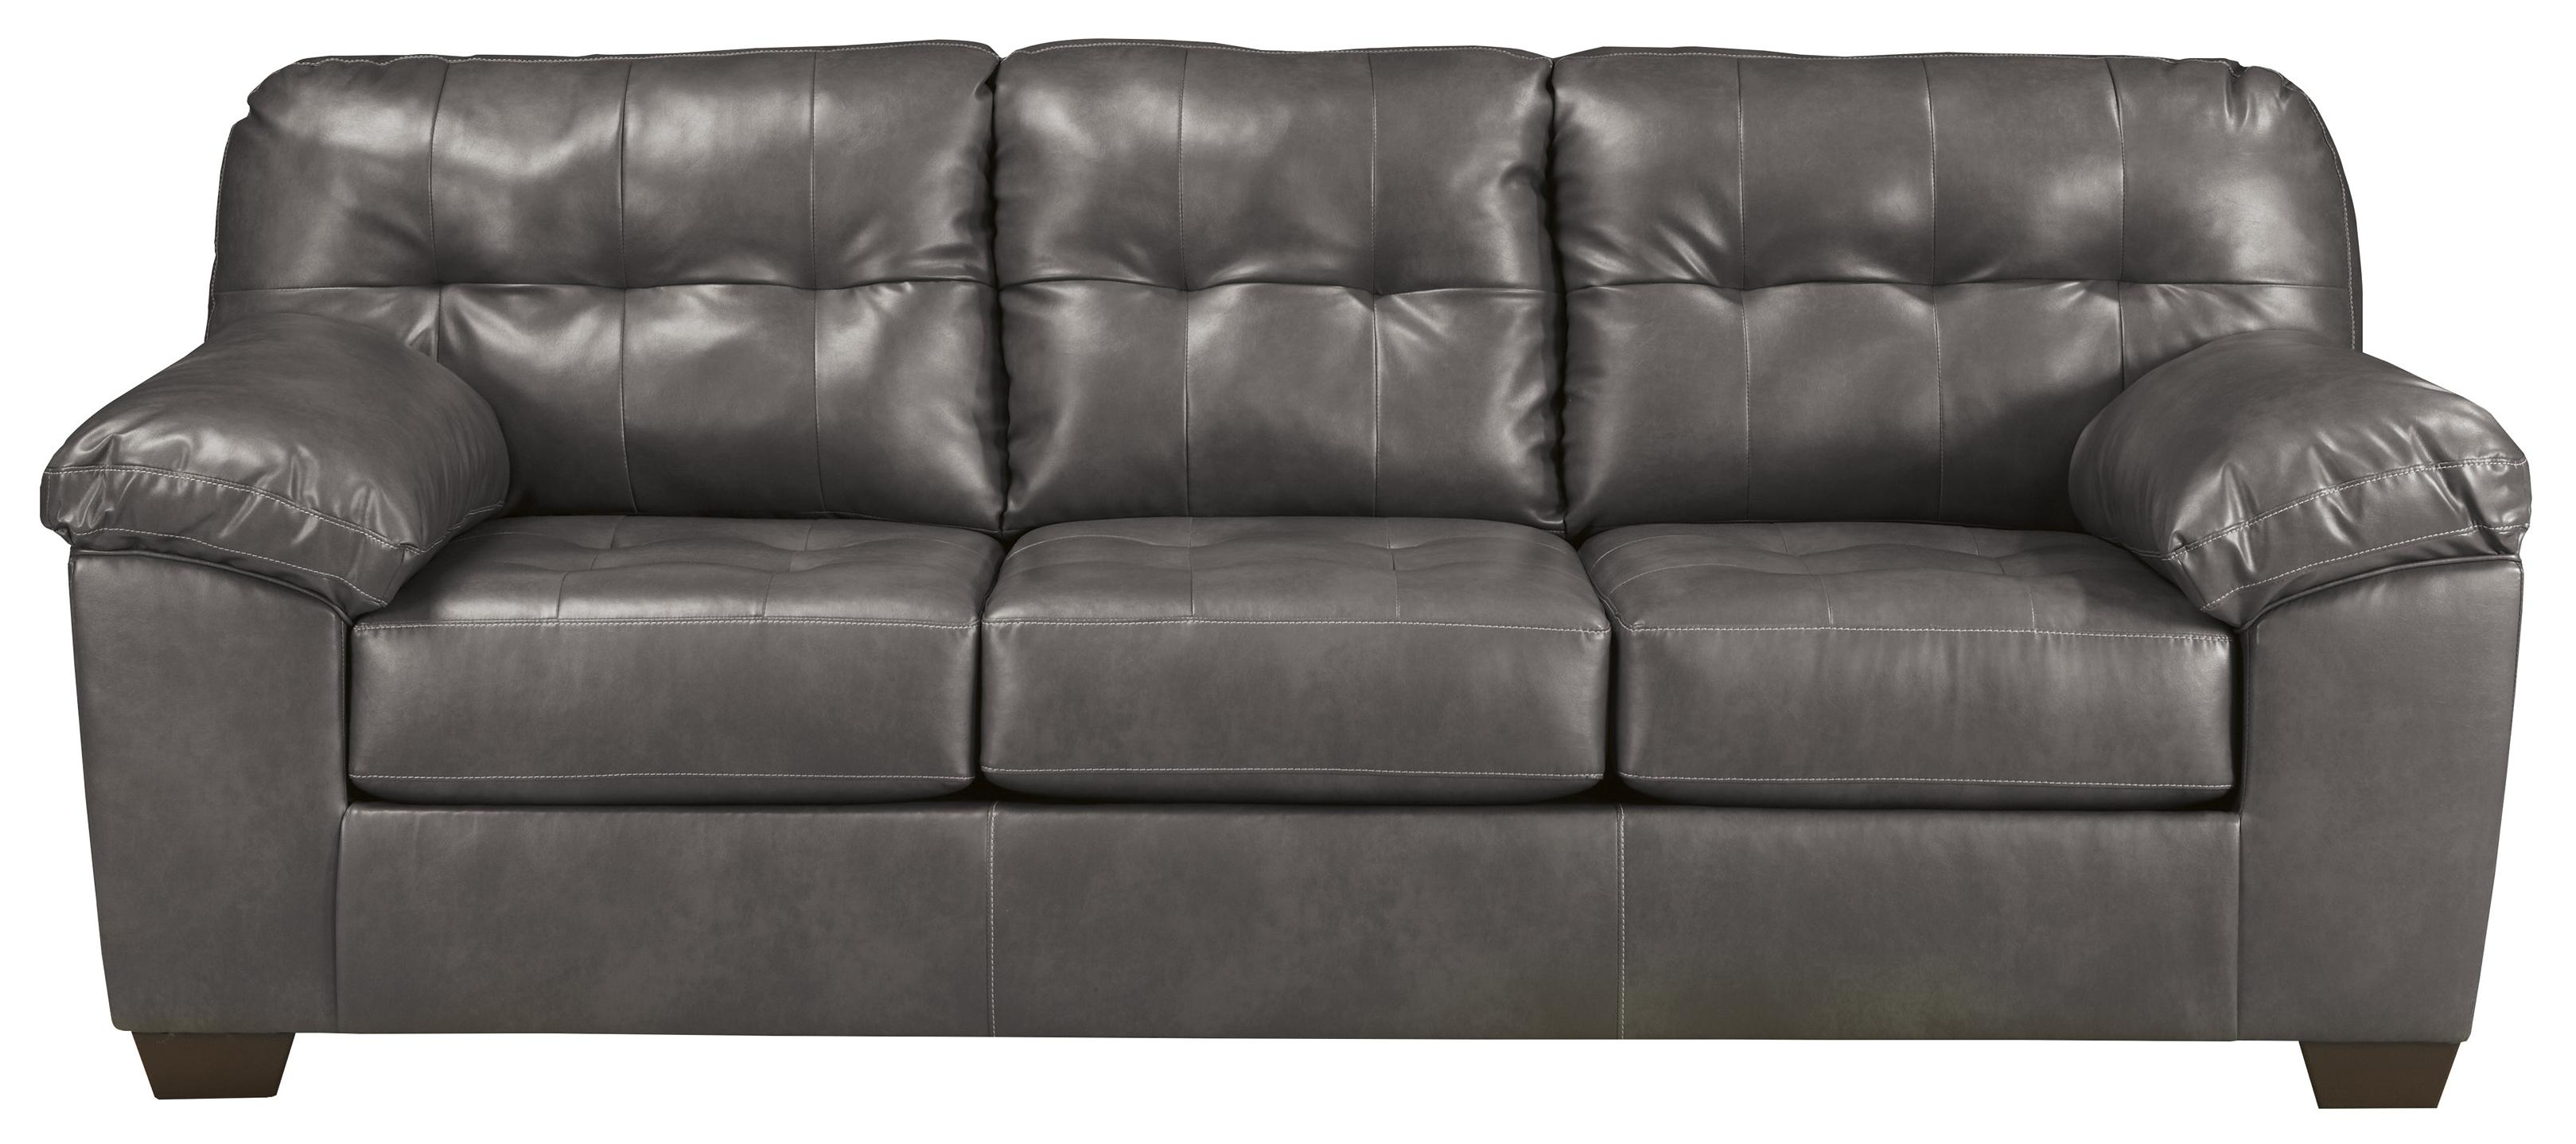 leather sectional sleeper sofa queen and loveseat sets faux w tufting by signature